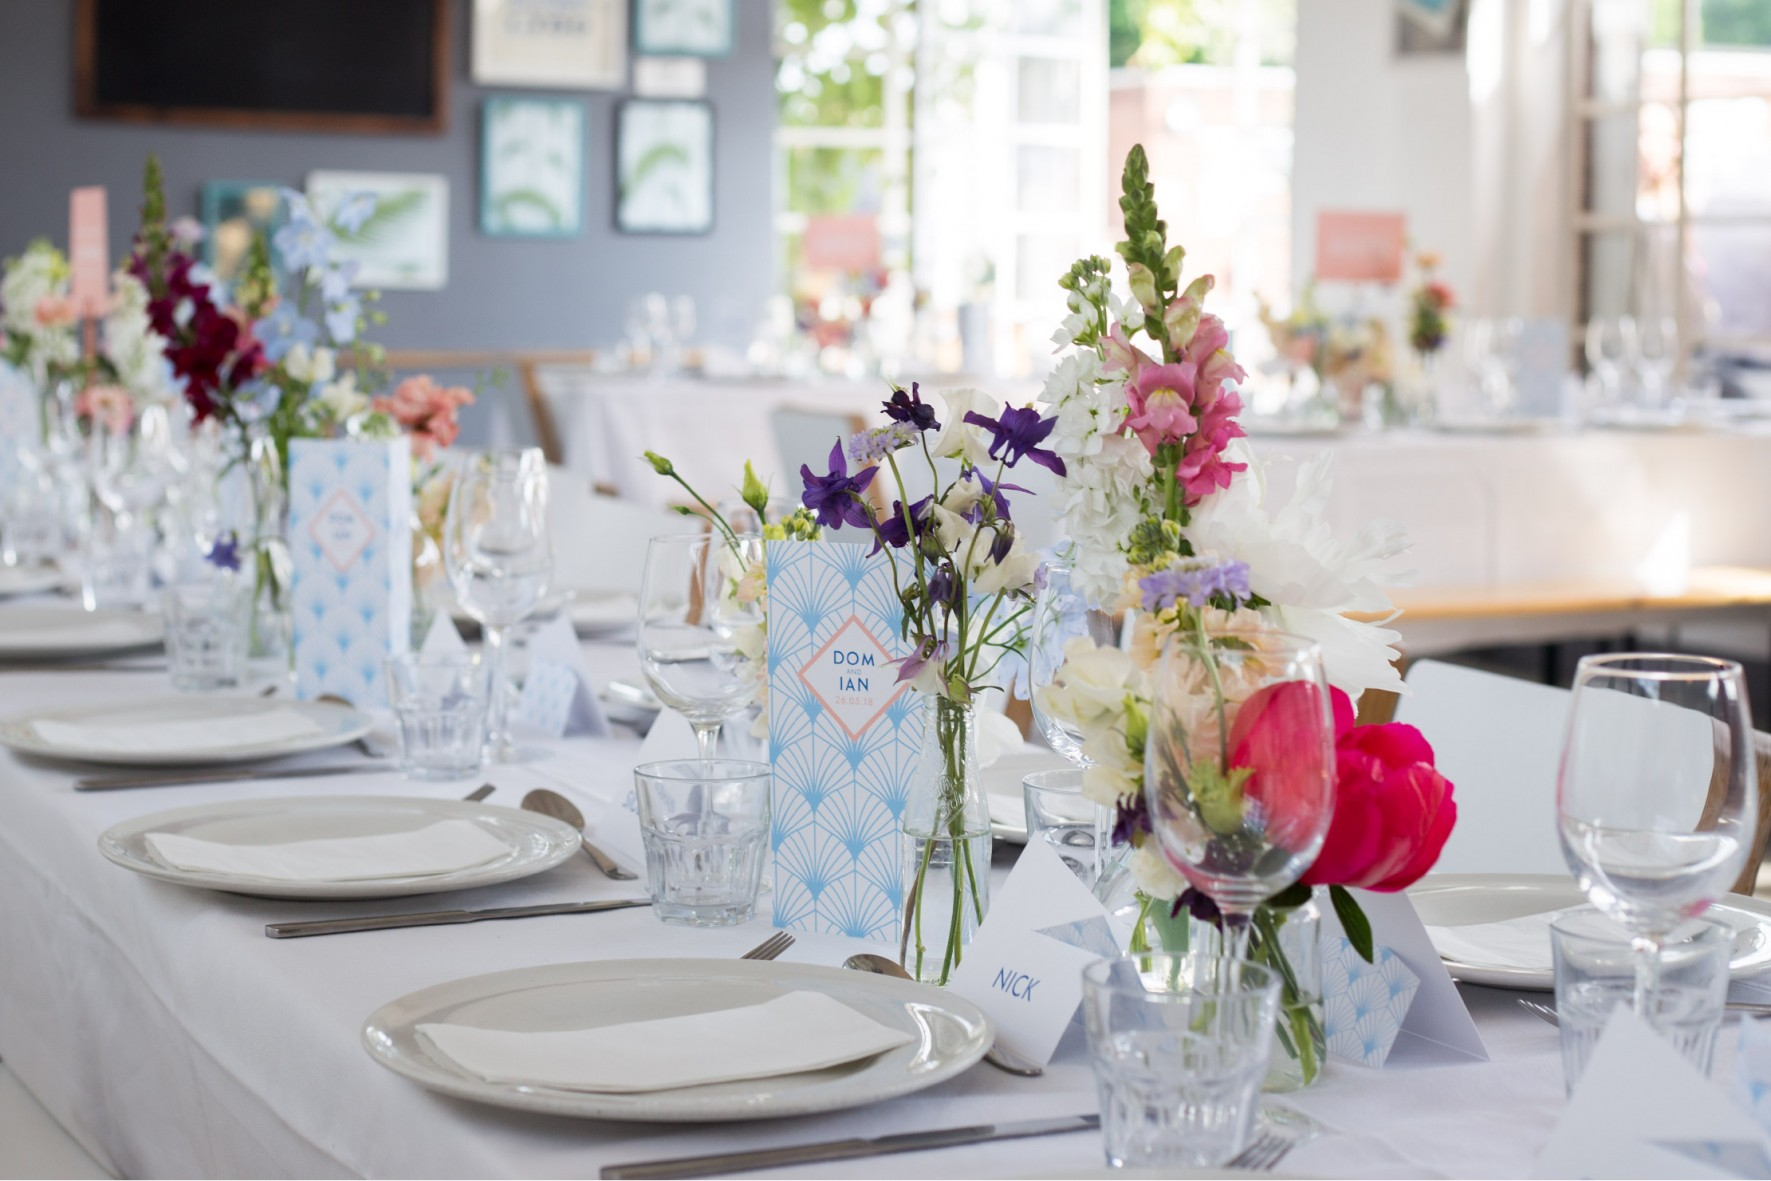 Brockwell Lido Wedding - Modern wedding styling and stationery by www.rosepaperscissors.com